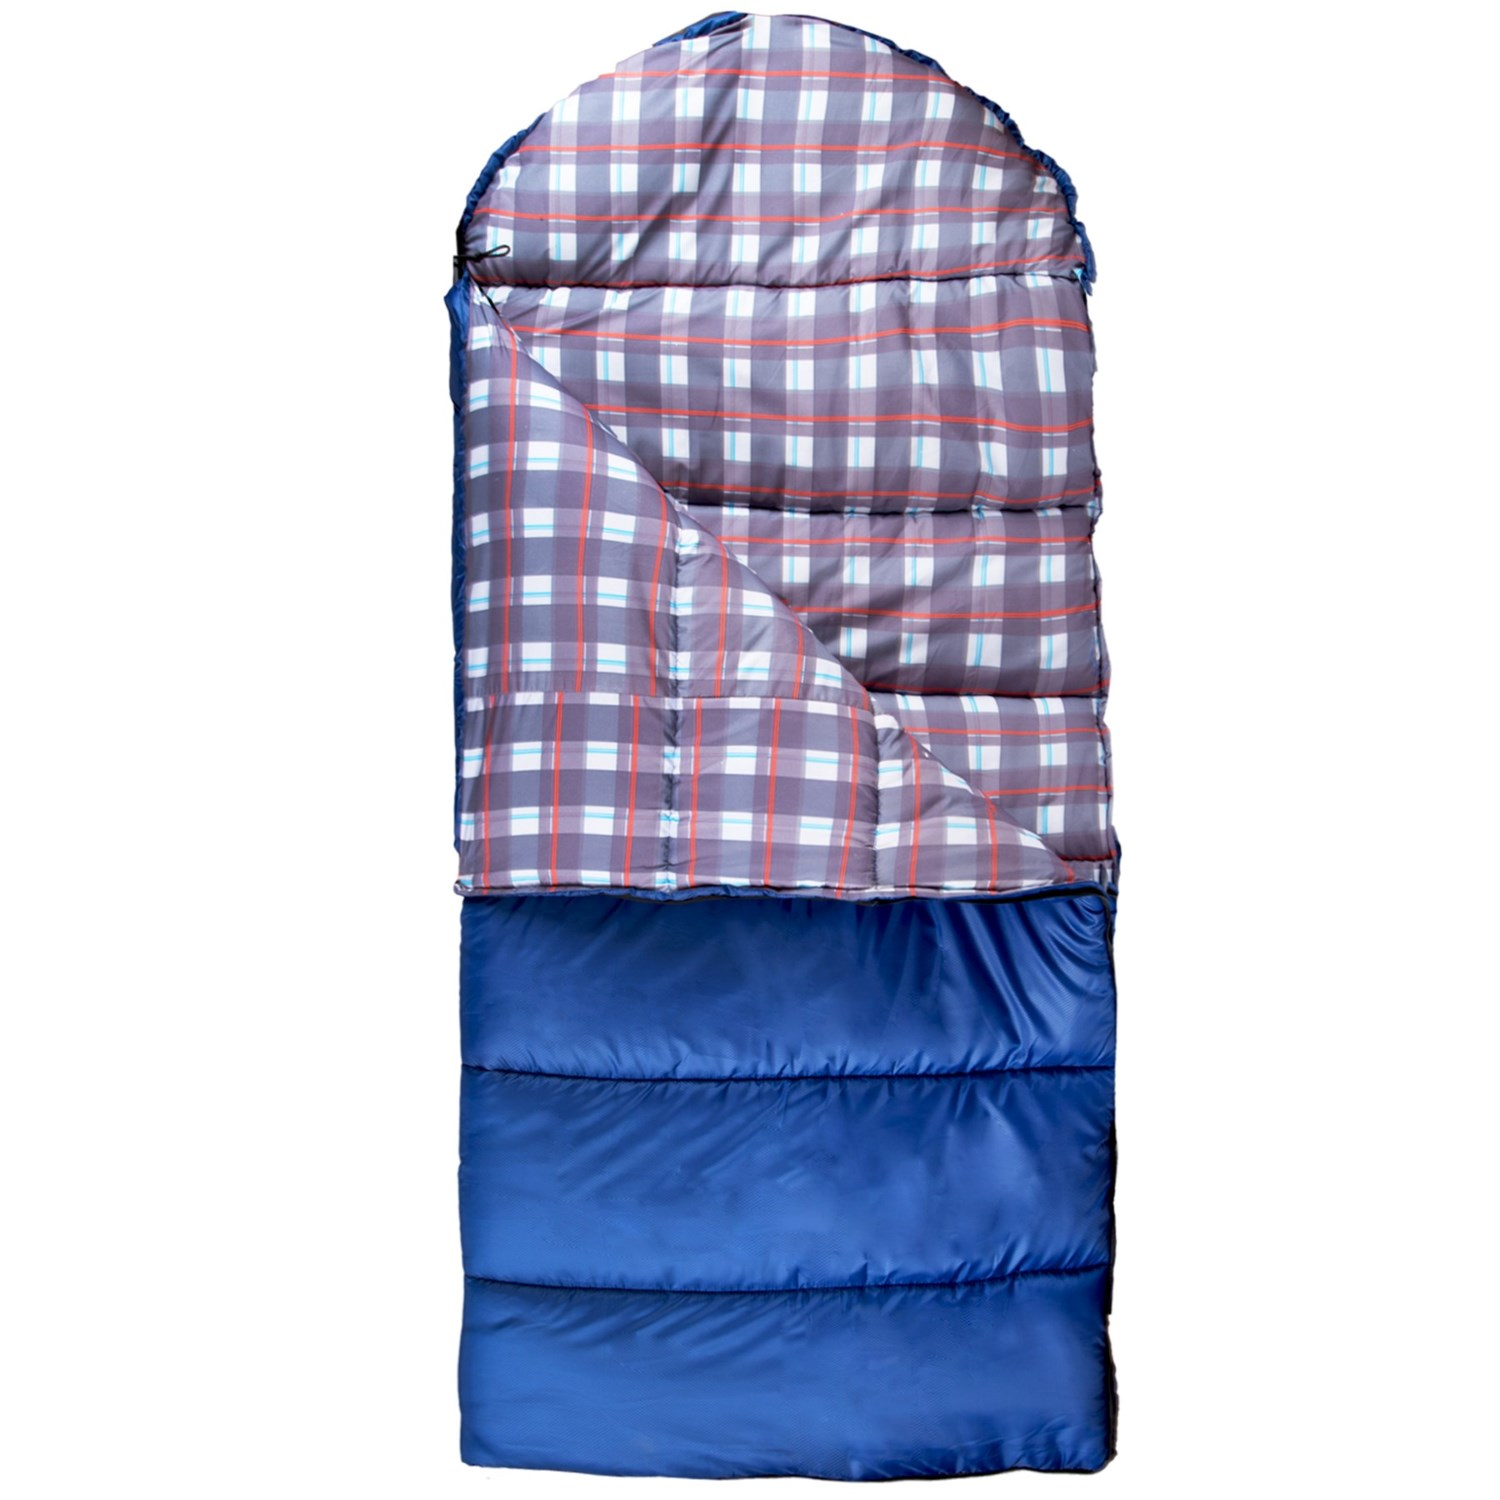 Suisse Sport 25°F Tahoe Sleeping Bag